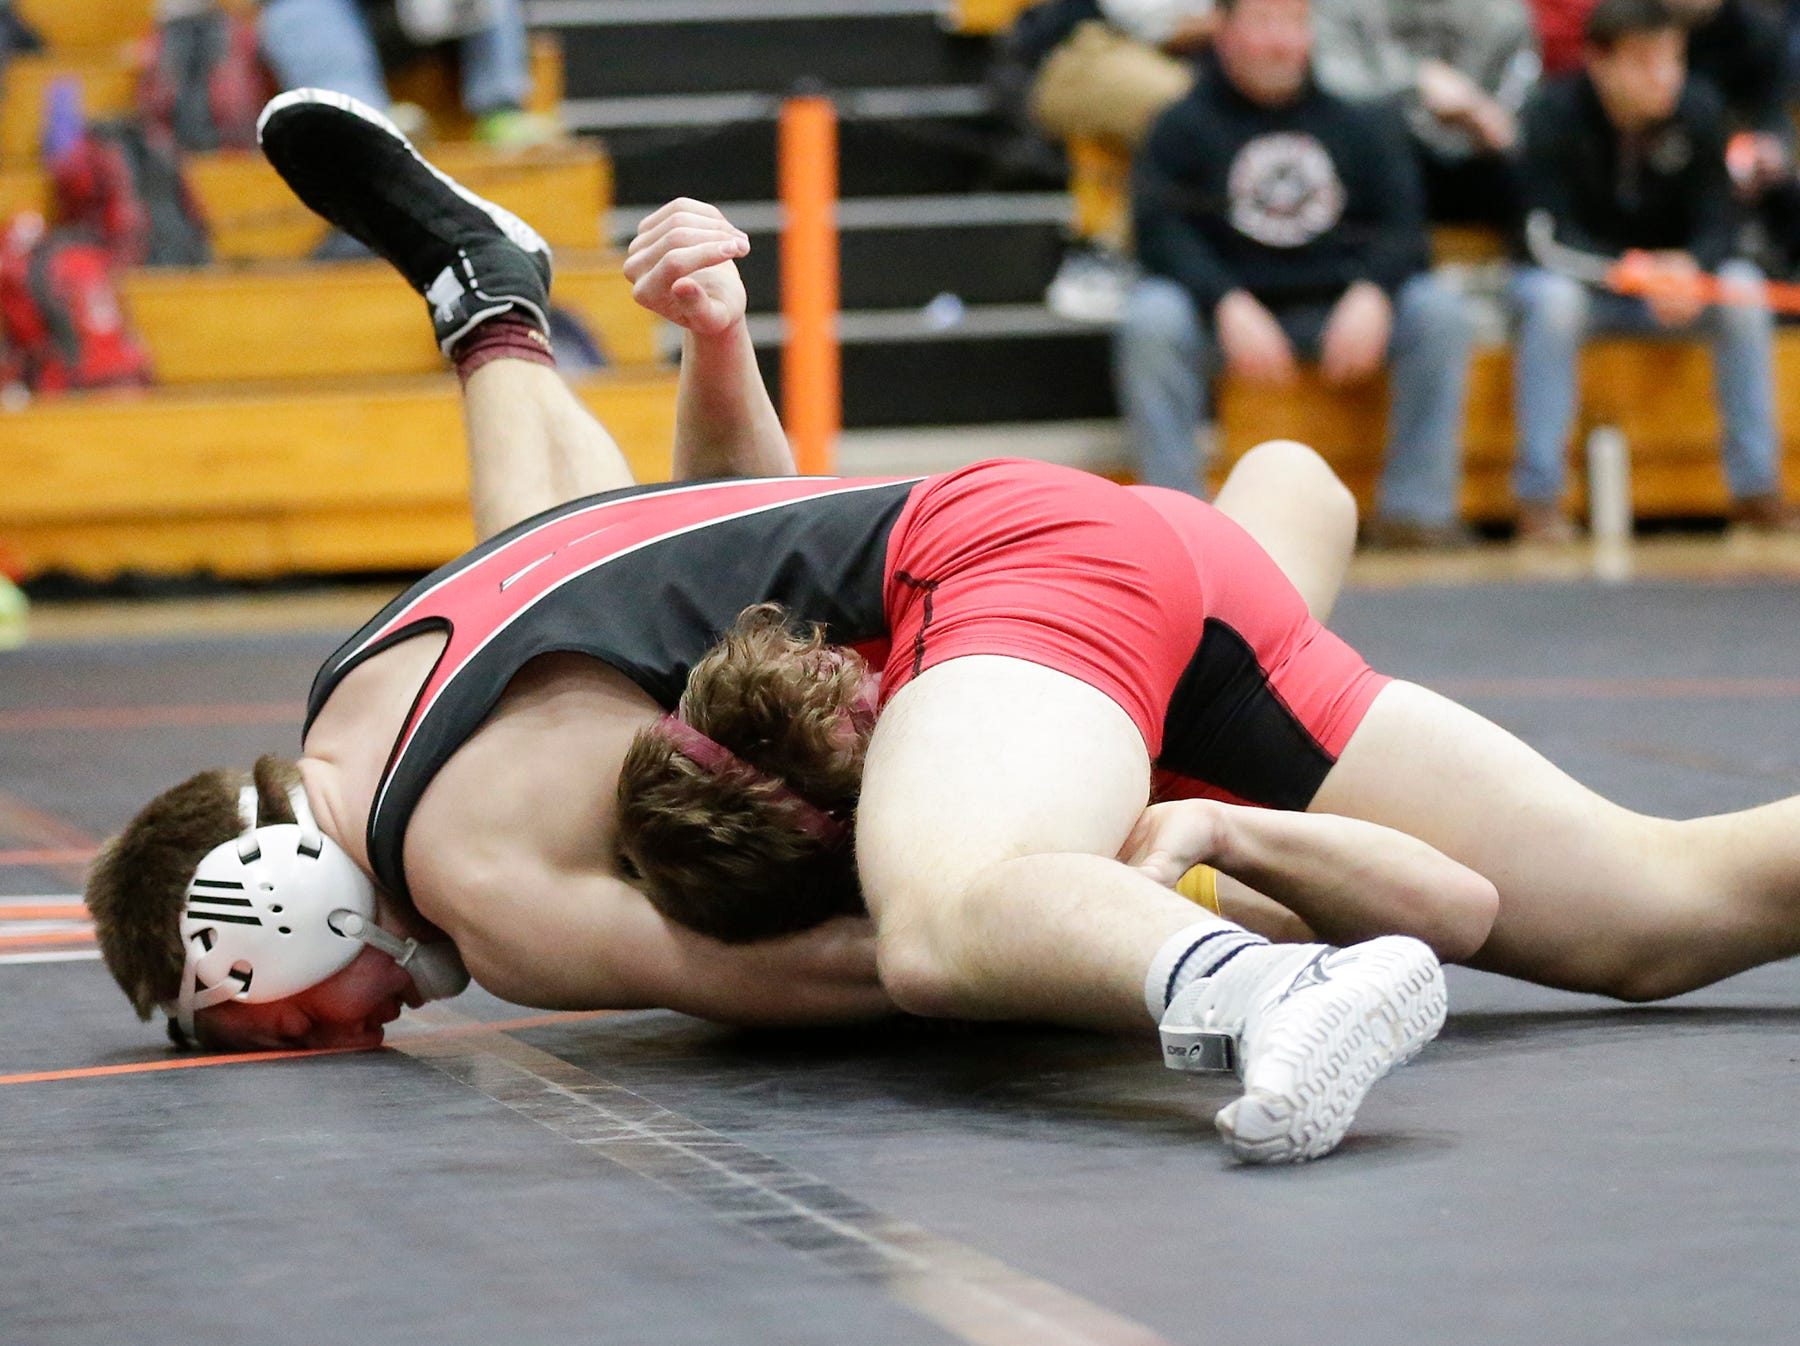 Isaiah McCormick of Neenah High School wrestles Brady Schmidt of West Bend East High School in the 170 pound weight class during the WIAA sectionals Saturday, February 16, 2019 in Hartford, Wis. McCormick won with a pin. Doug Raflik/USA TODAY NETWORK-Wisconsin